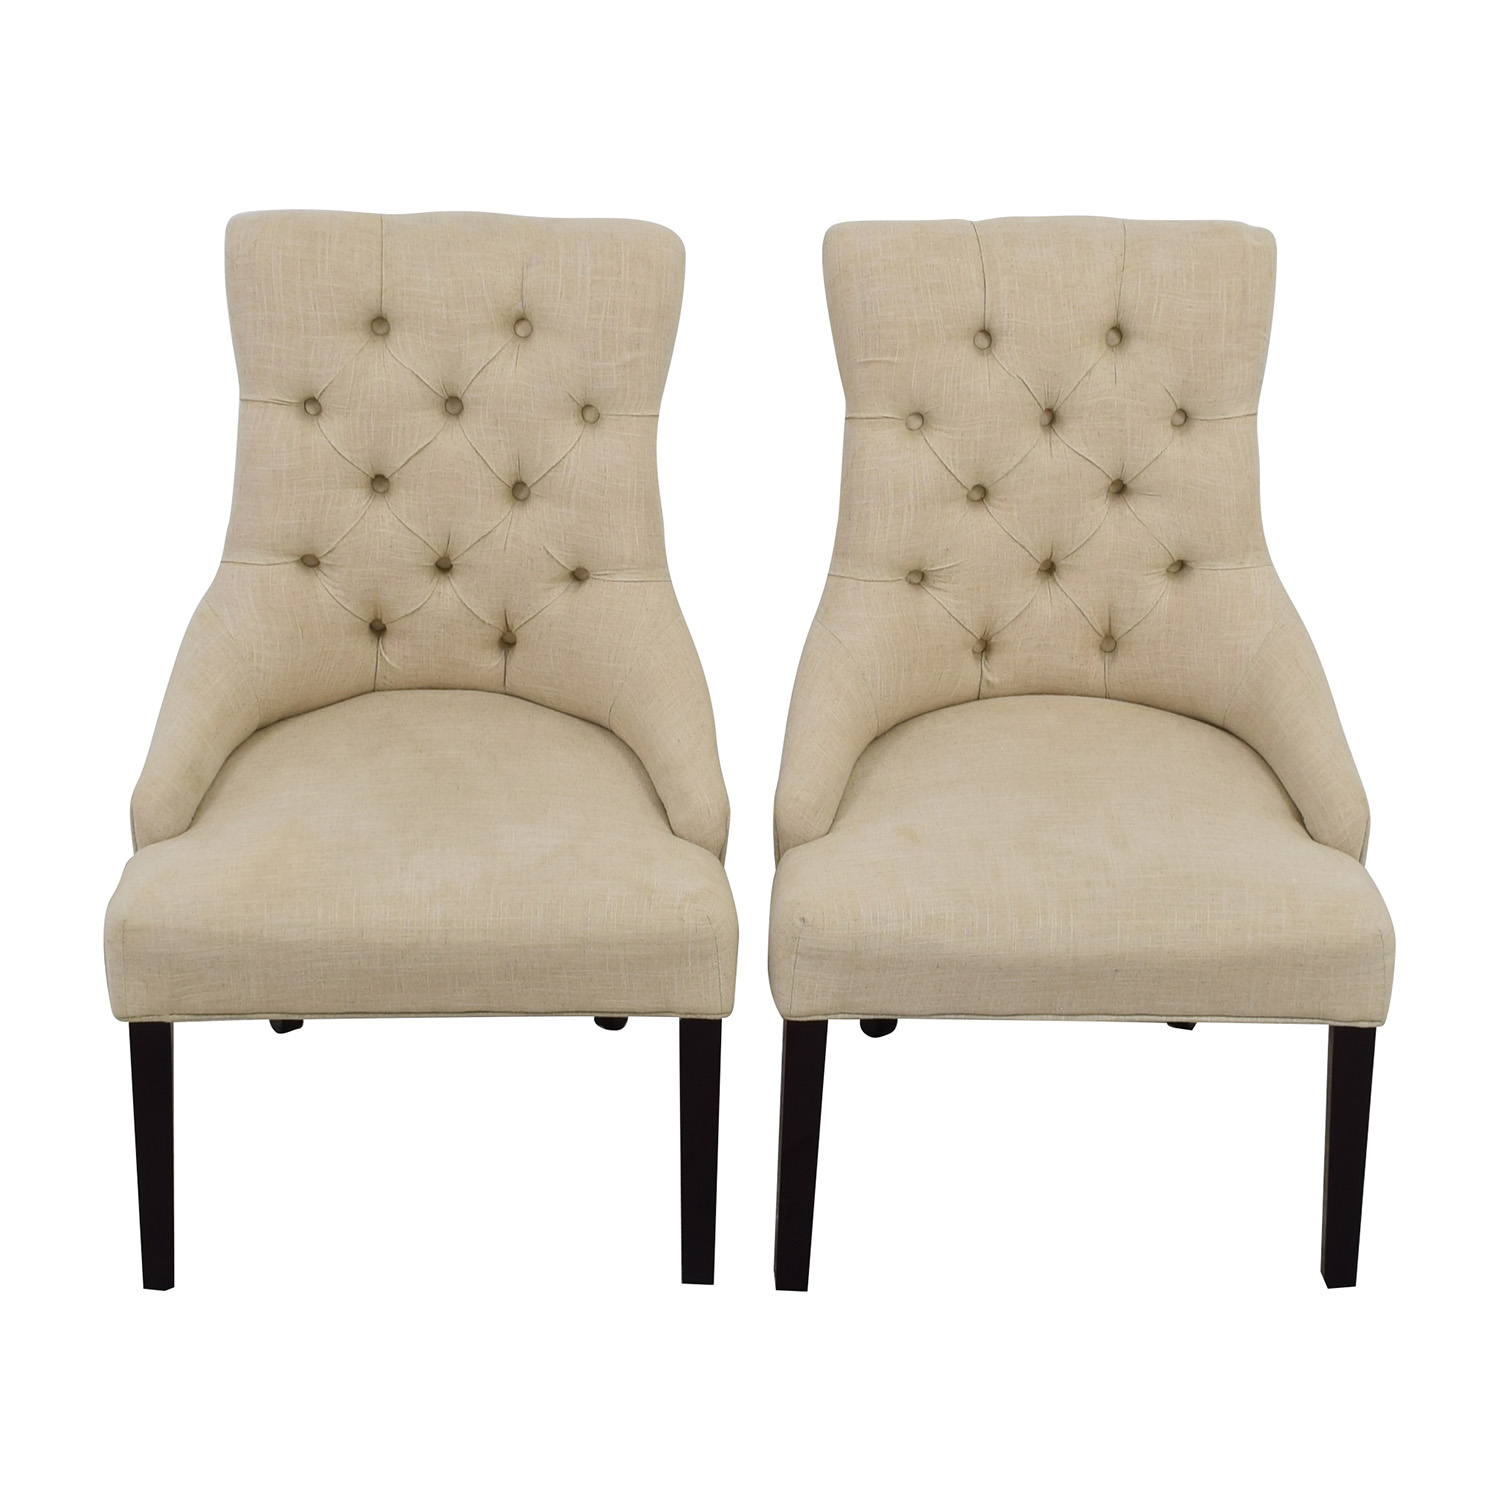 Raymour And Flanigan Chairs: Raymour & Flanigan Raymour & Flanigan White